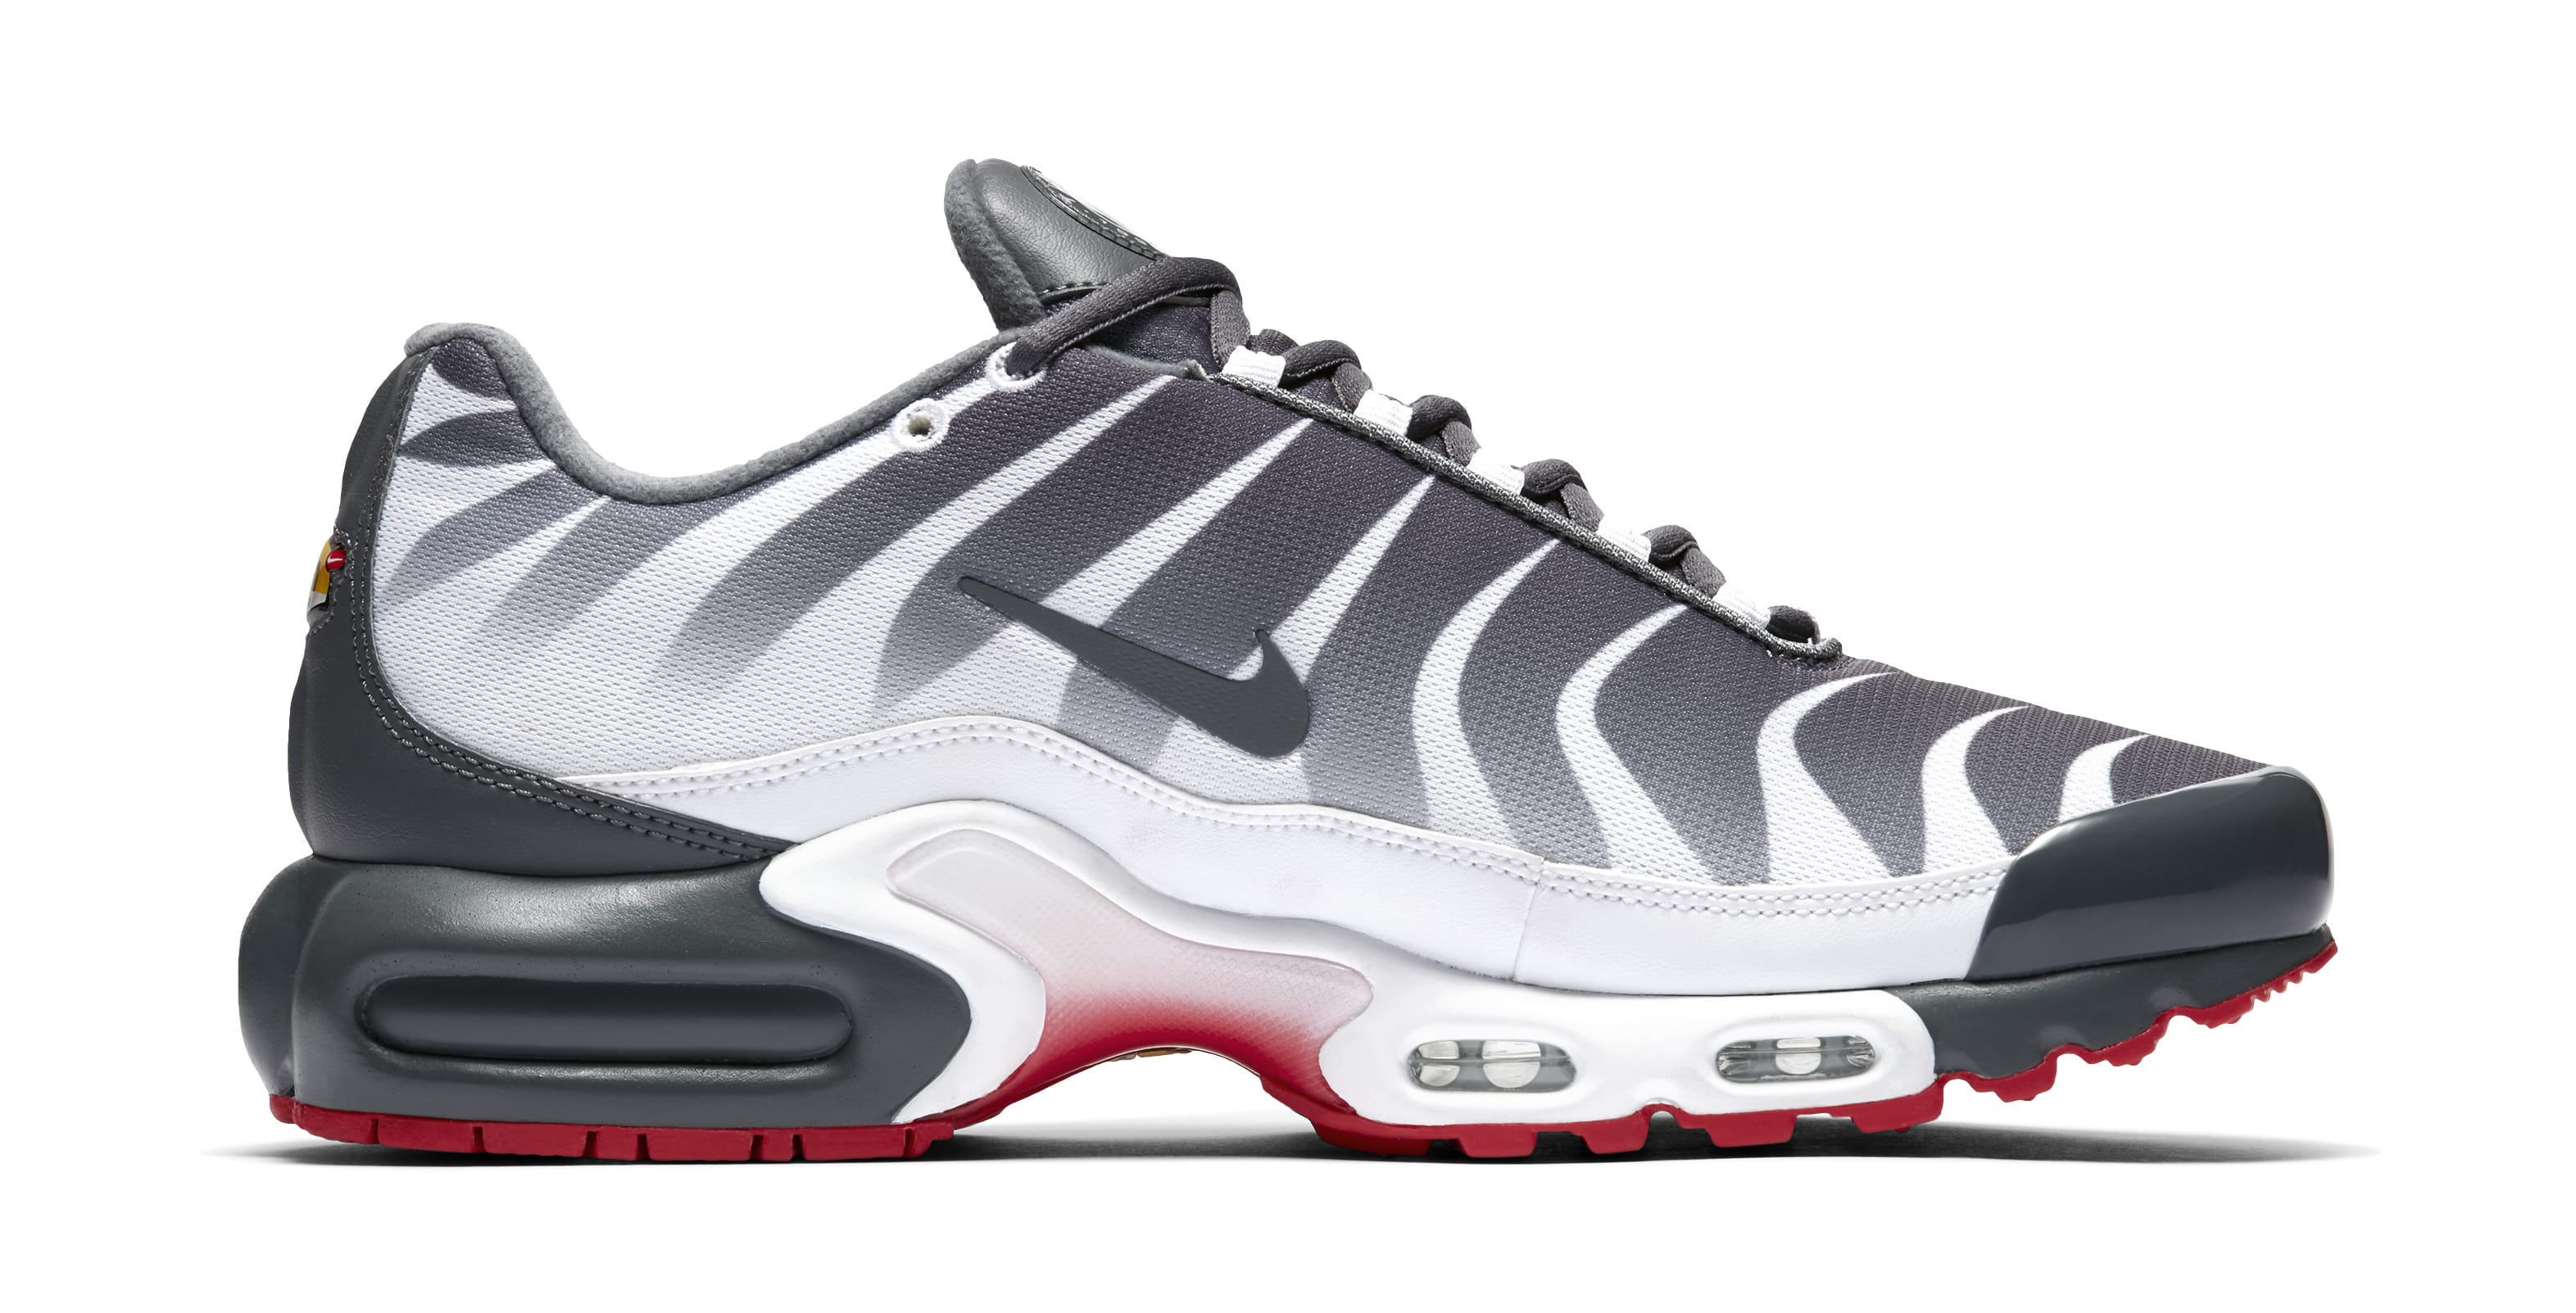 5566e0c5d0a ... reduced image via foot locker nike air max plus before the bite medial  a4204 0a923 switzerland women ...